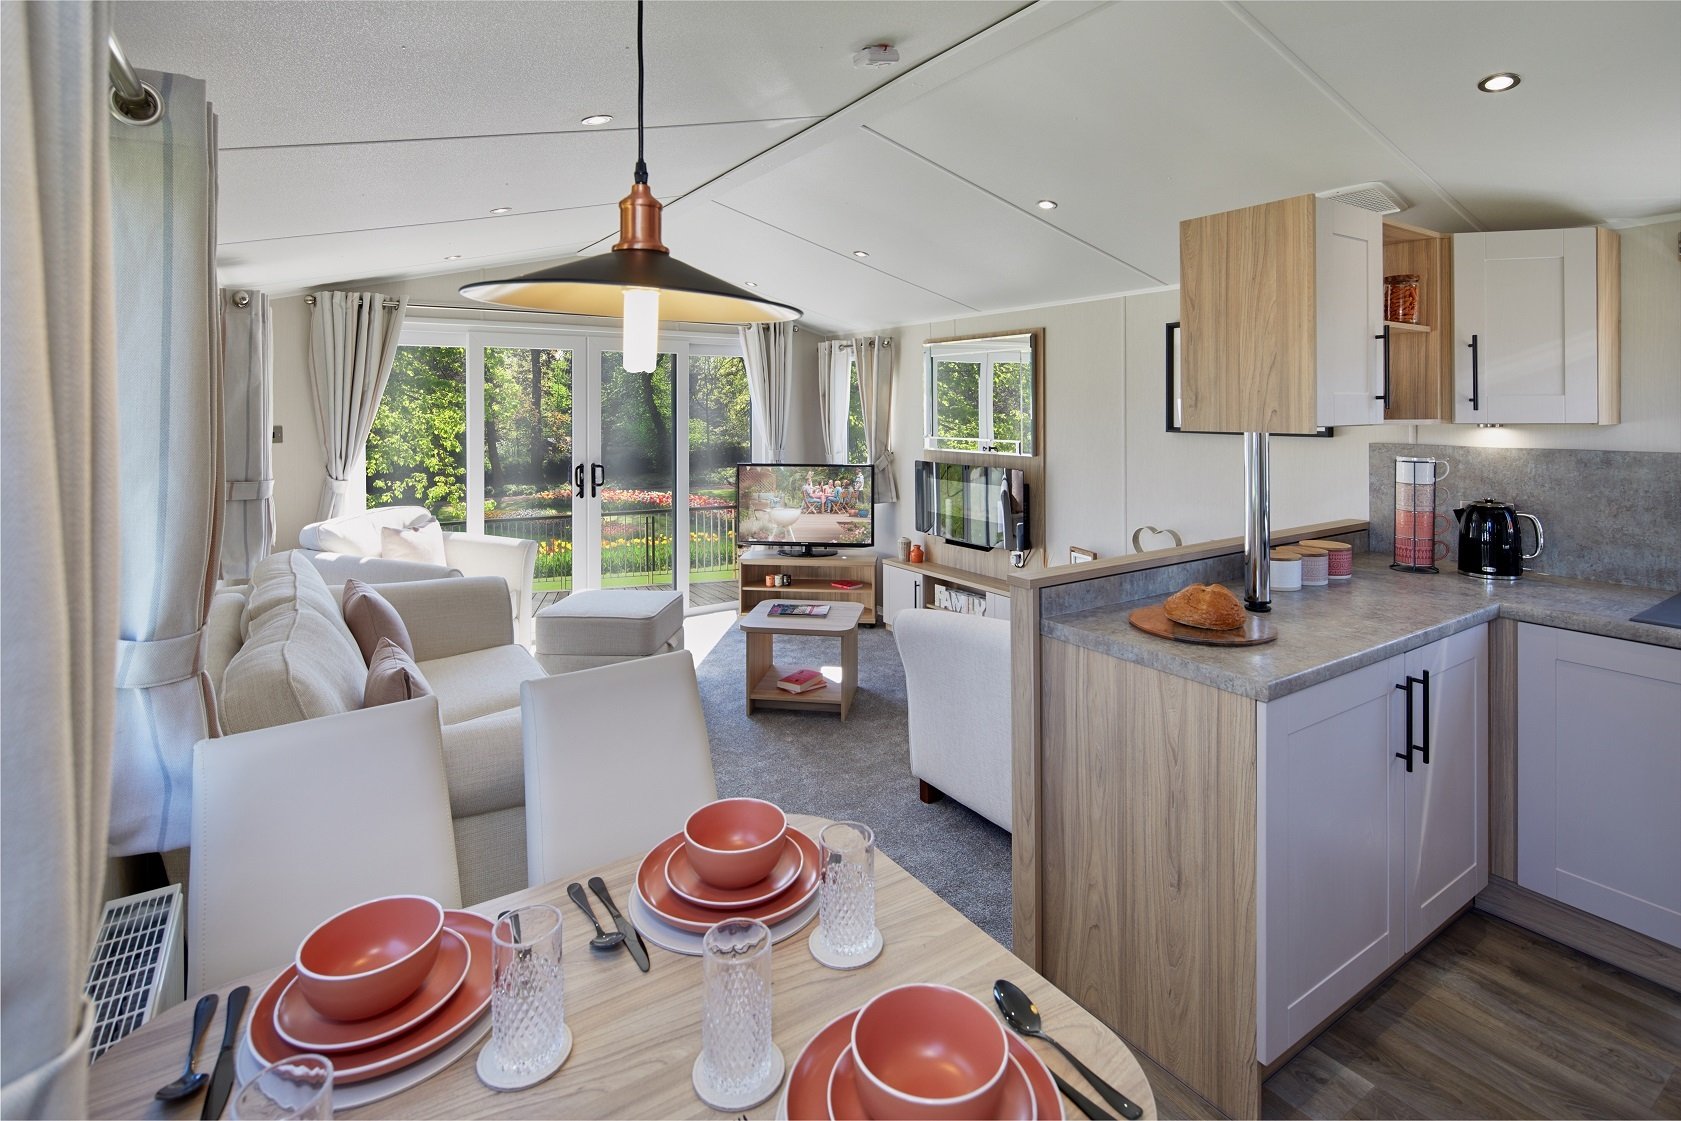 Willerby Manor: New Static Caravans and Holiday Homes for Sale, Available to Order Large Image 1